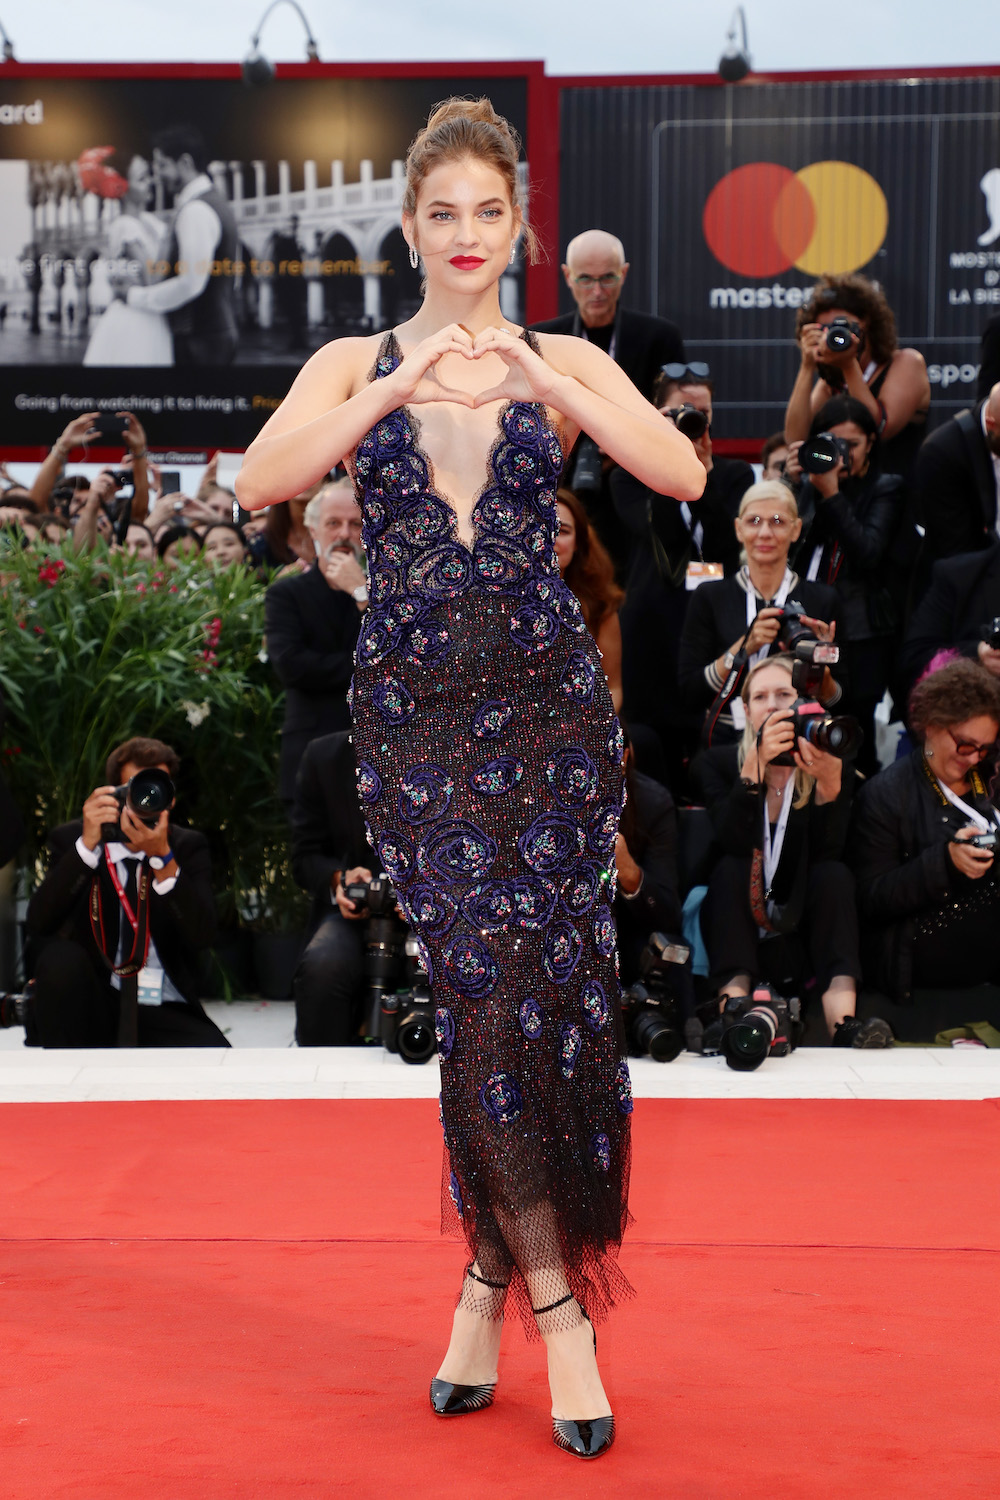 Ciao Bella! The Looks That Stole the Show at the Venice Film Festival